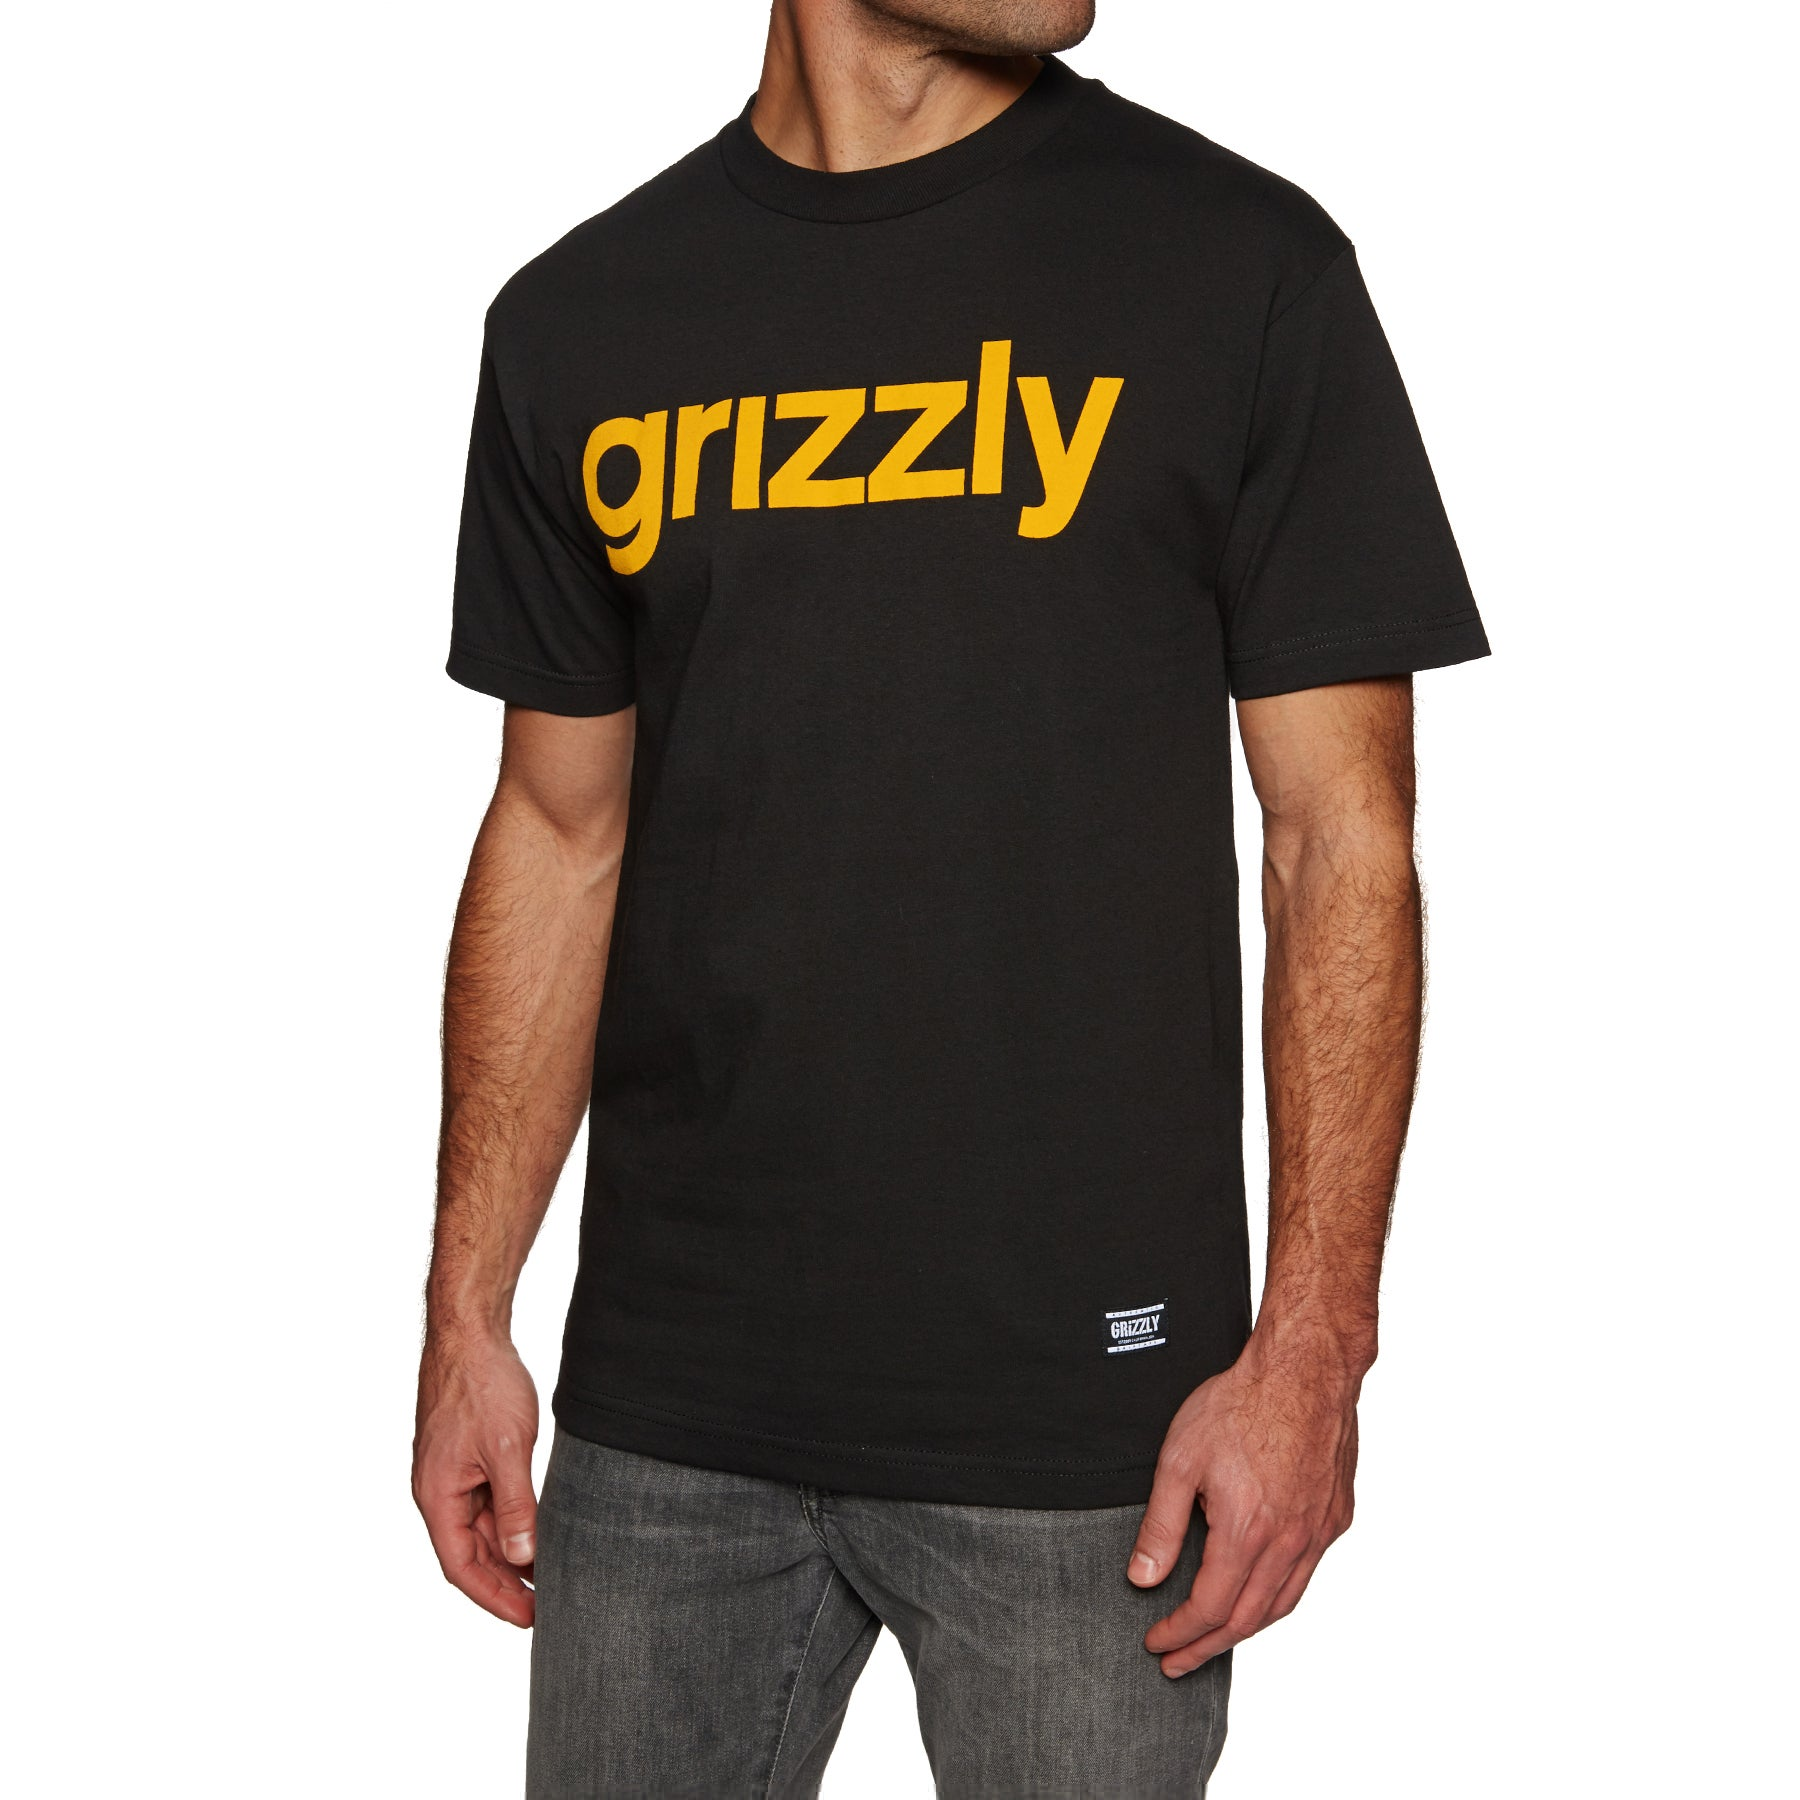 Grizzly Lowercase Short Sleeve T-Shirt - Black/yellow